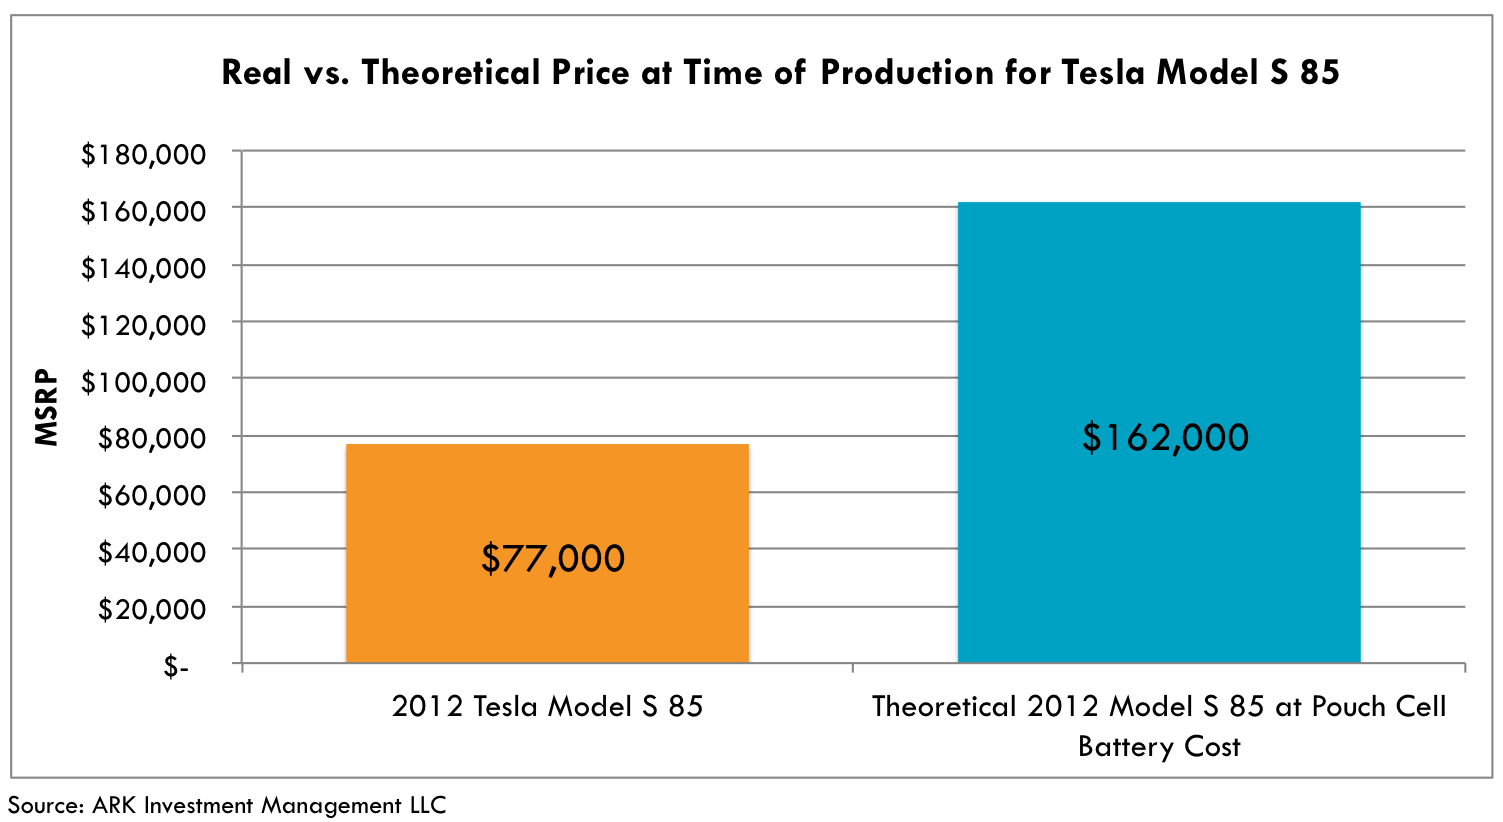 battery system, battery research, battery technology comparison, battery system review, tesla, ark research, innovation research, invest in innovation